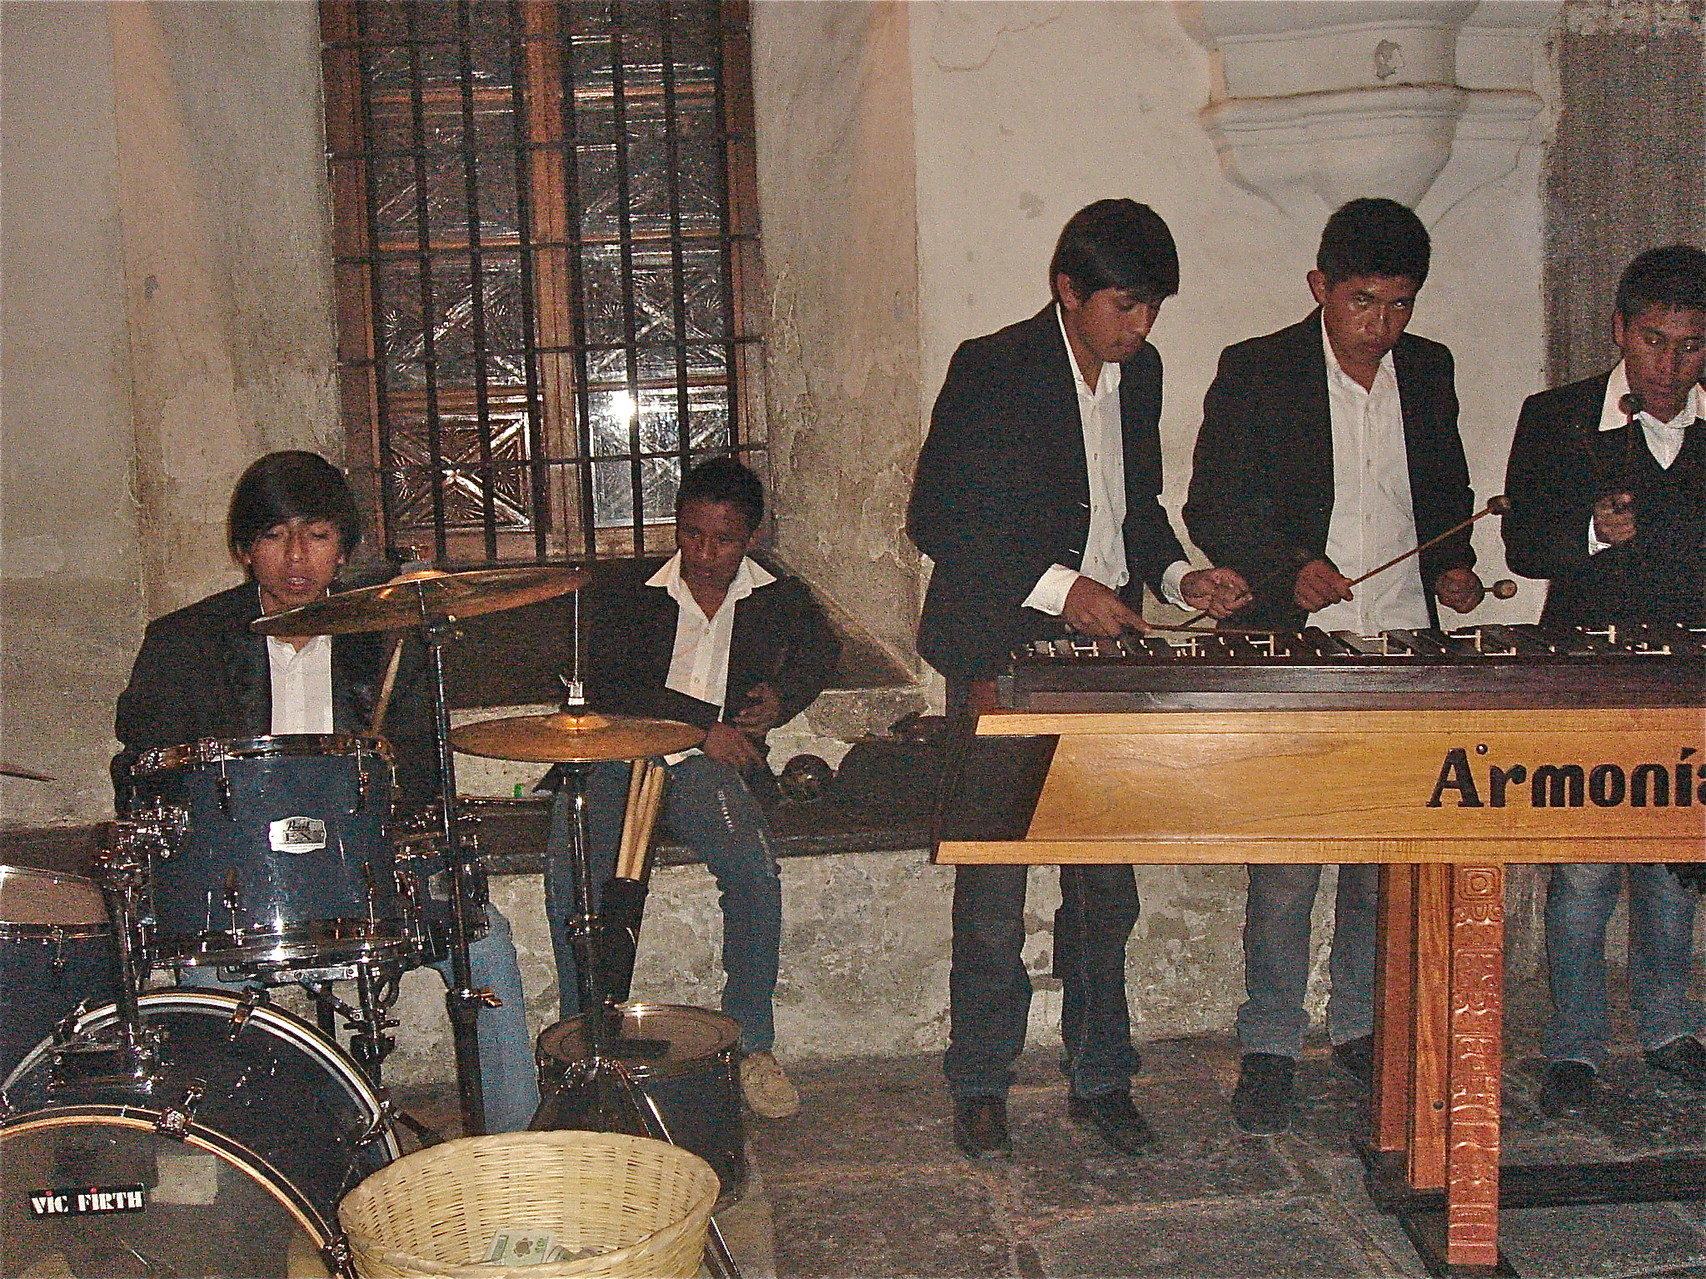 Marimba players in the town square